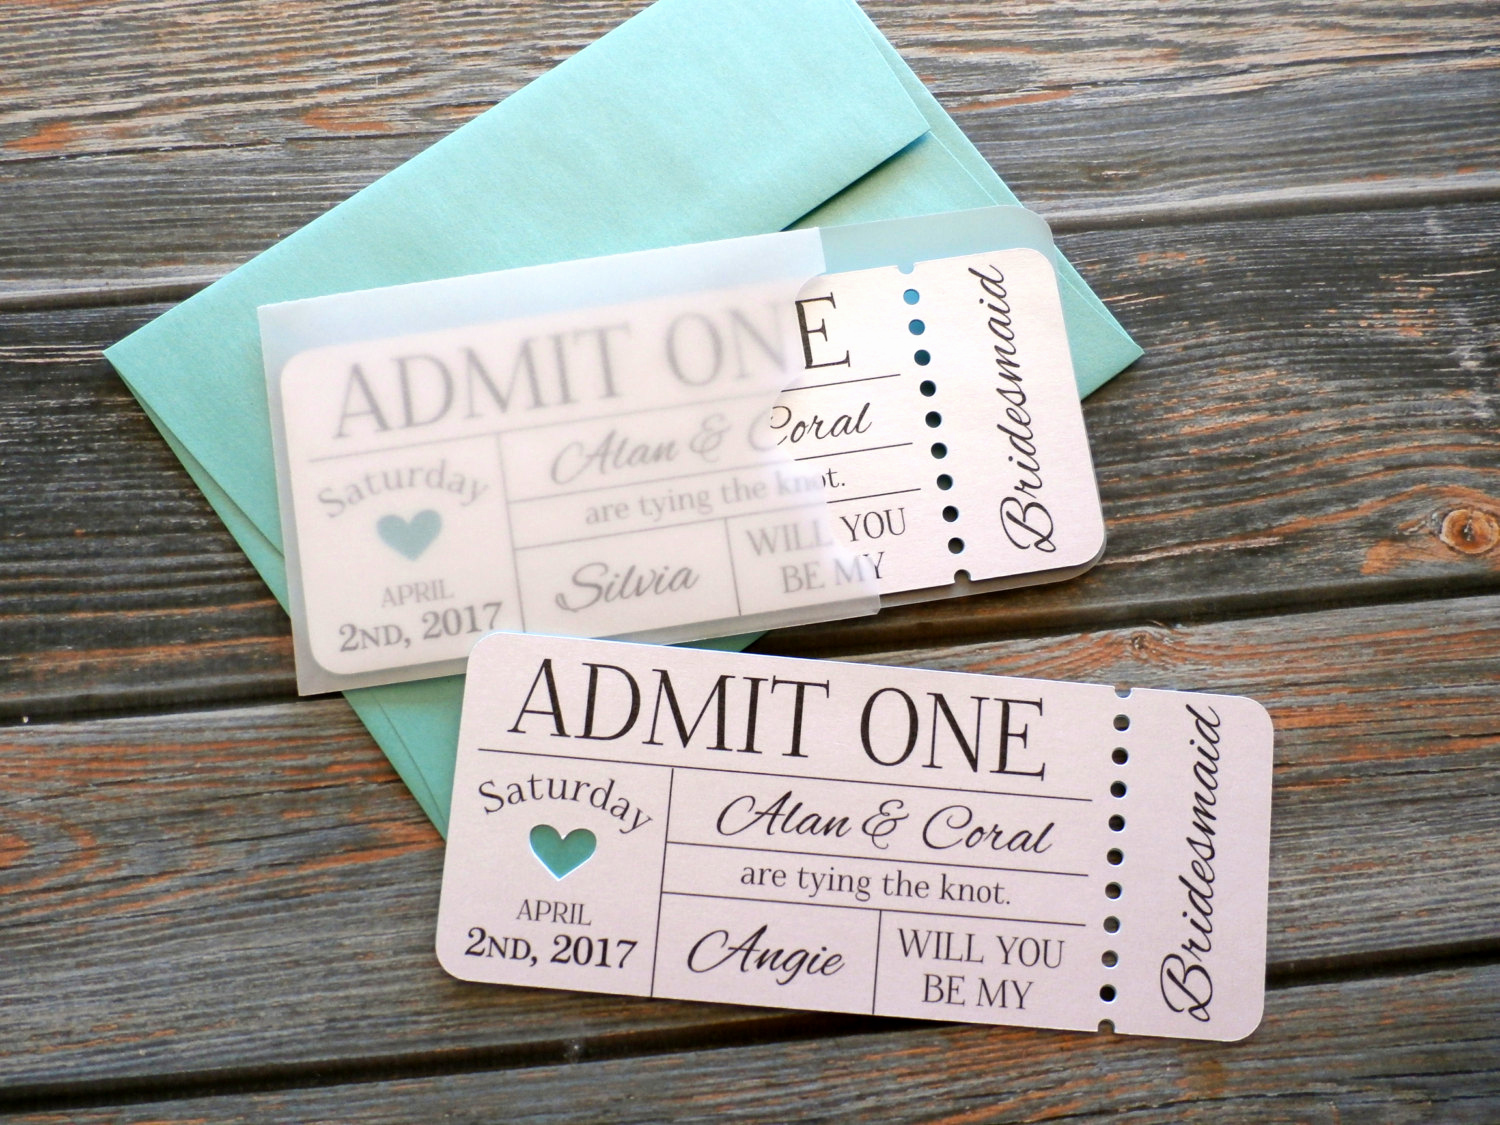 Admit One Ticket Invitation New Personalized Bridesmaid Invitation Admit E Ticket by